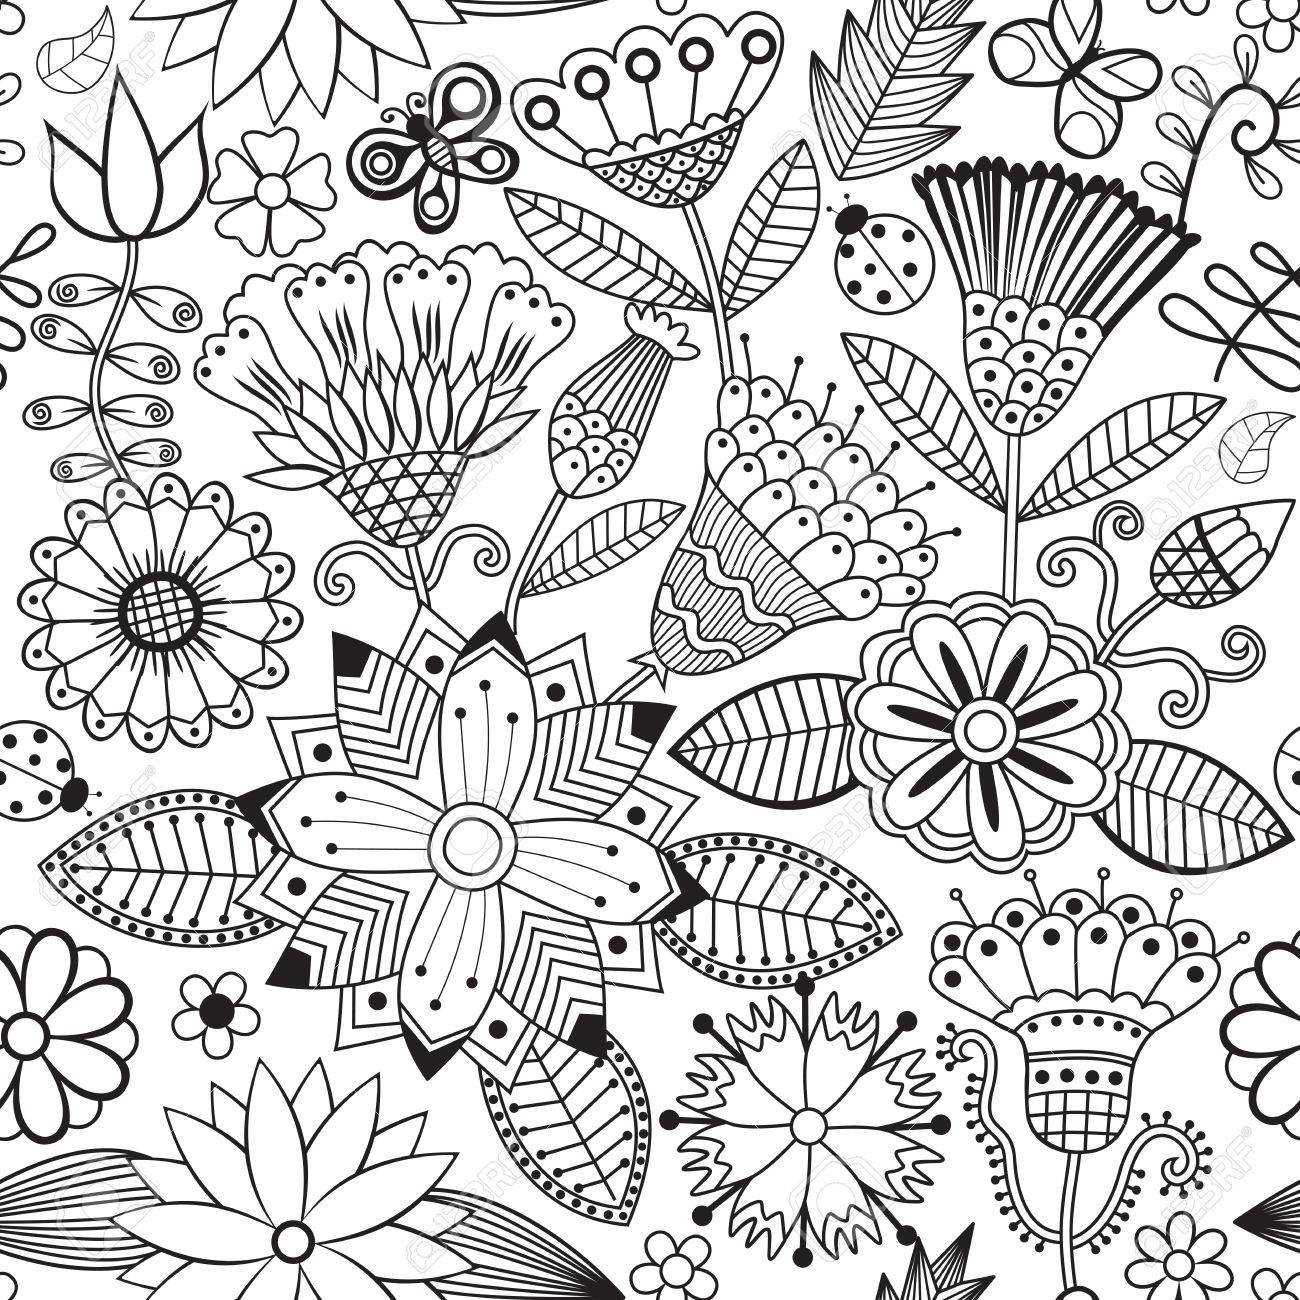 online store 041a9 2064b 50036093-vector-flower-pattern-black-and-white -seamless-botanic-texture-detailed-flowers-illustrations-all-el.jpg